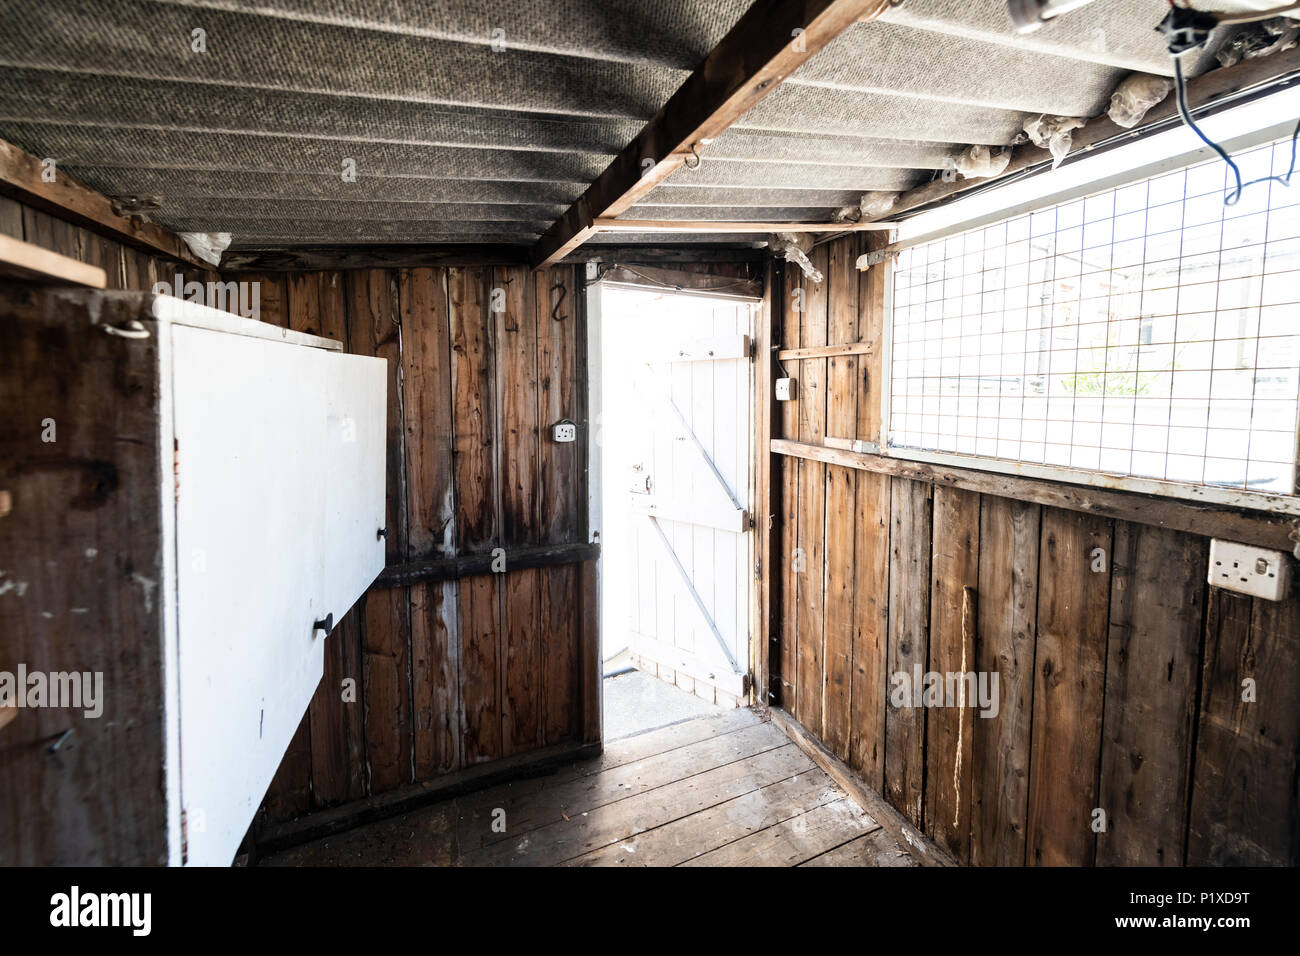 hight resolution of interior of an old abandoned shed with homemade workbench cupboards shelving asbestos roof and dangerous wiring